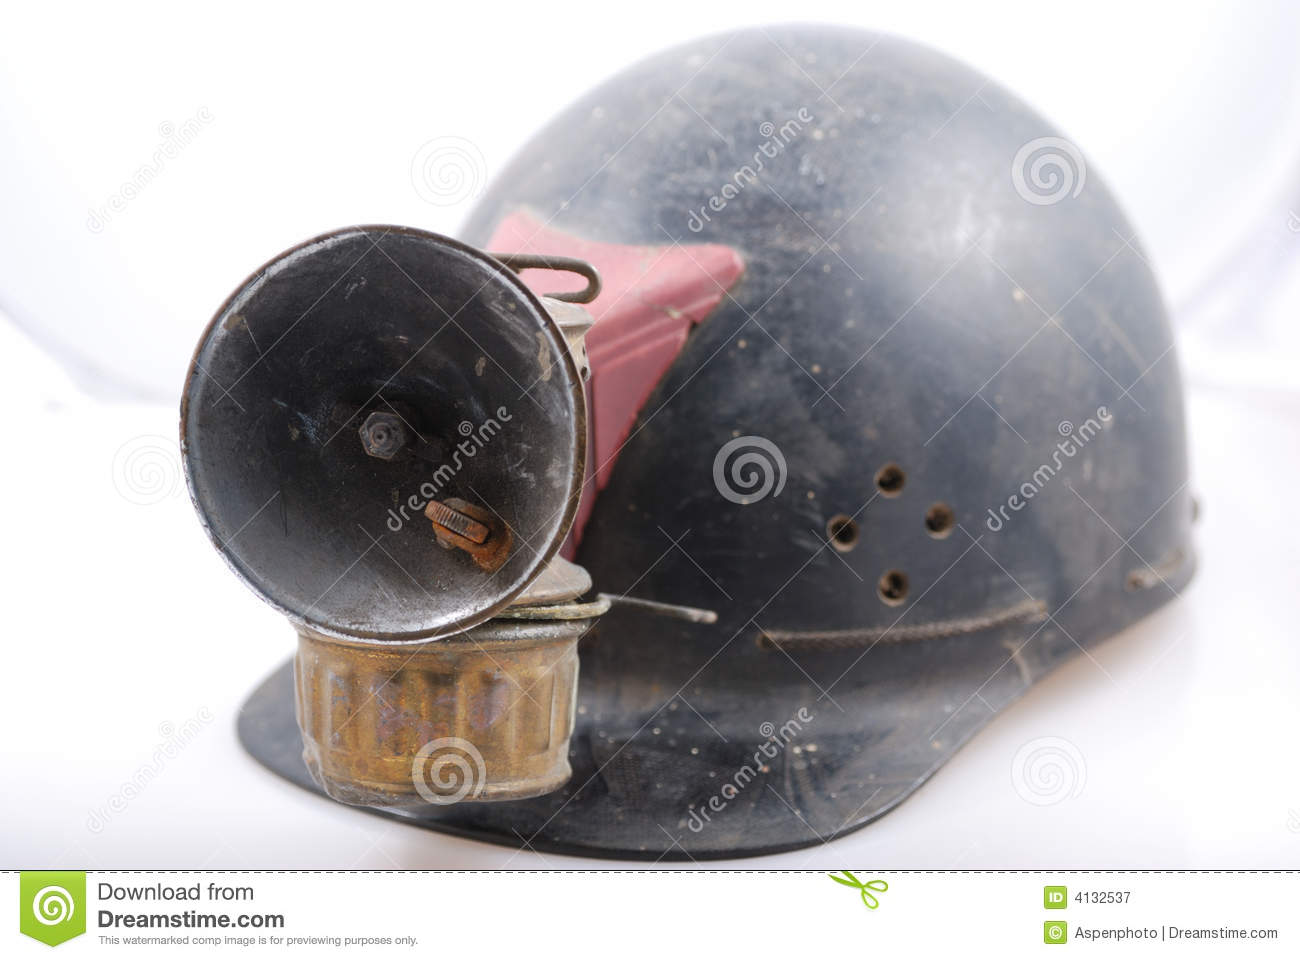 le casque de mineur de cru image stock image du casque 4132537. Black Bedroom Furniture Sets. Home Design Ideas